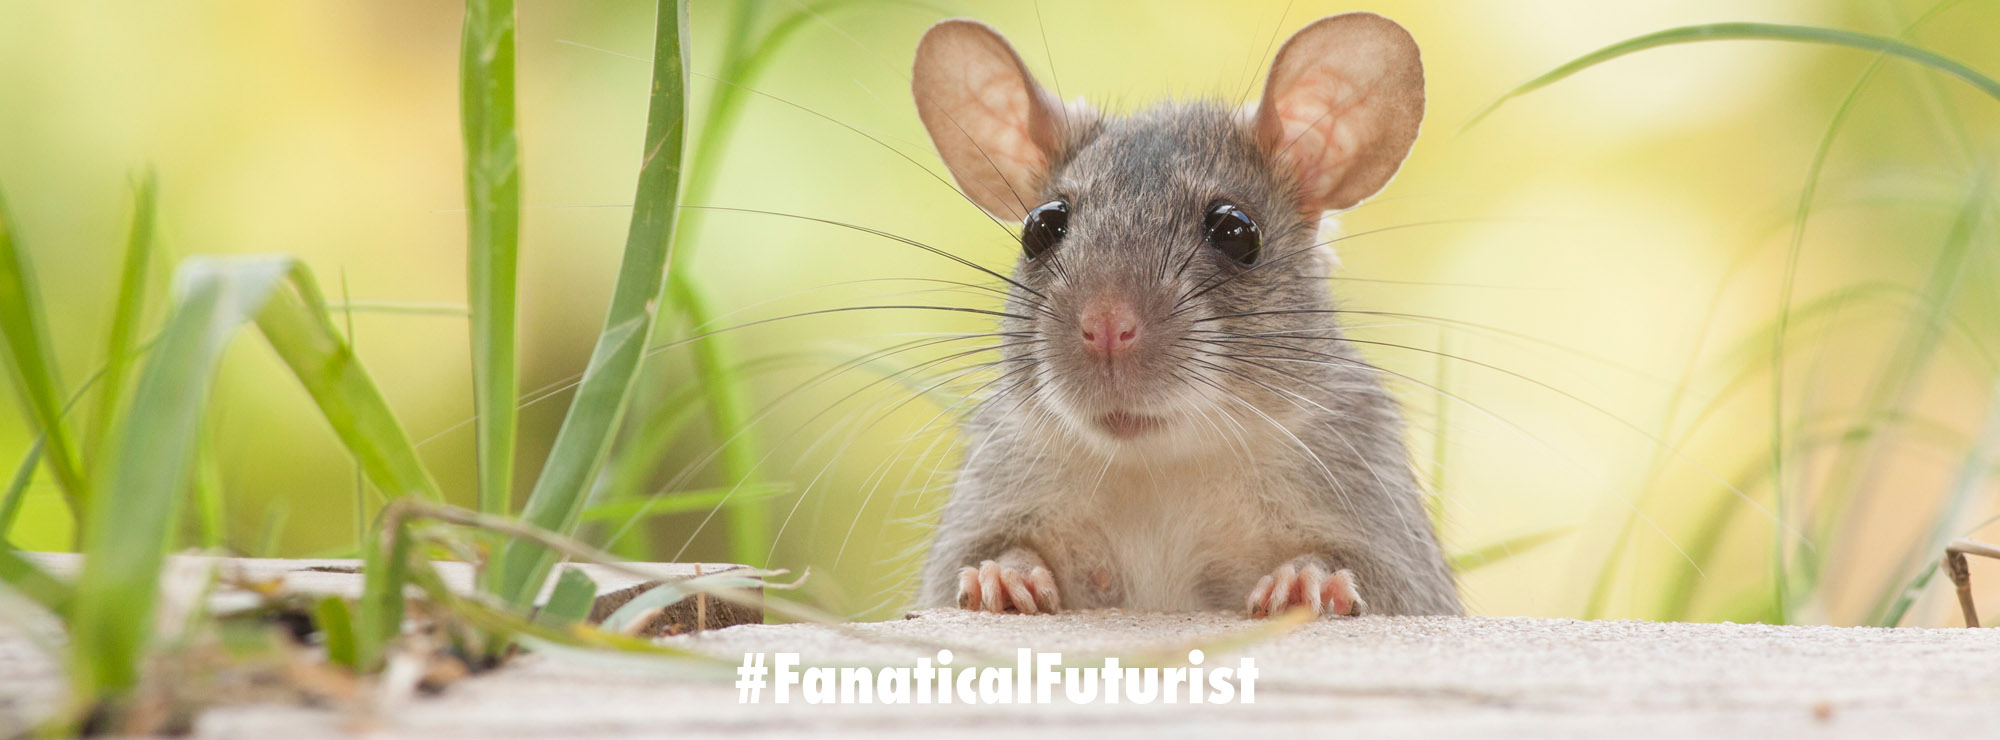 Animal Doctors – Library Mice